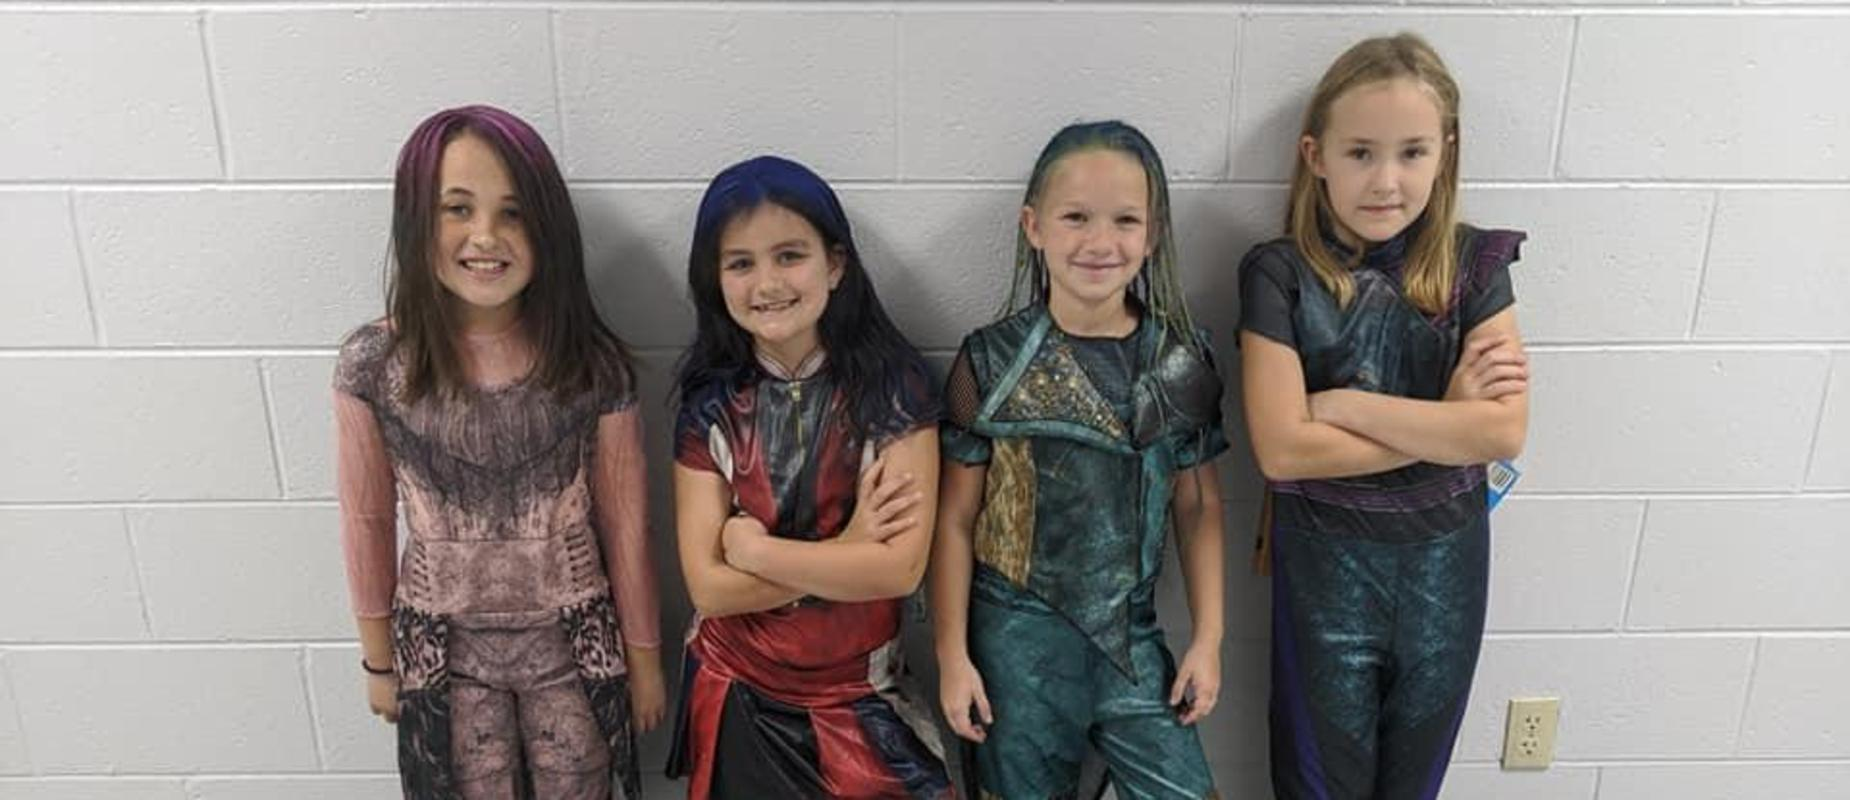 Character Dress-up Day